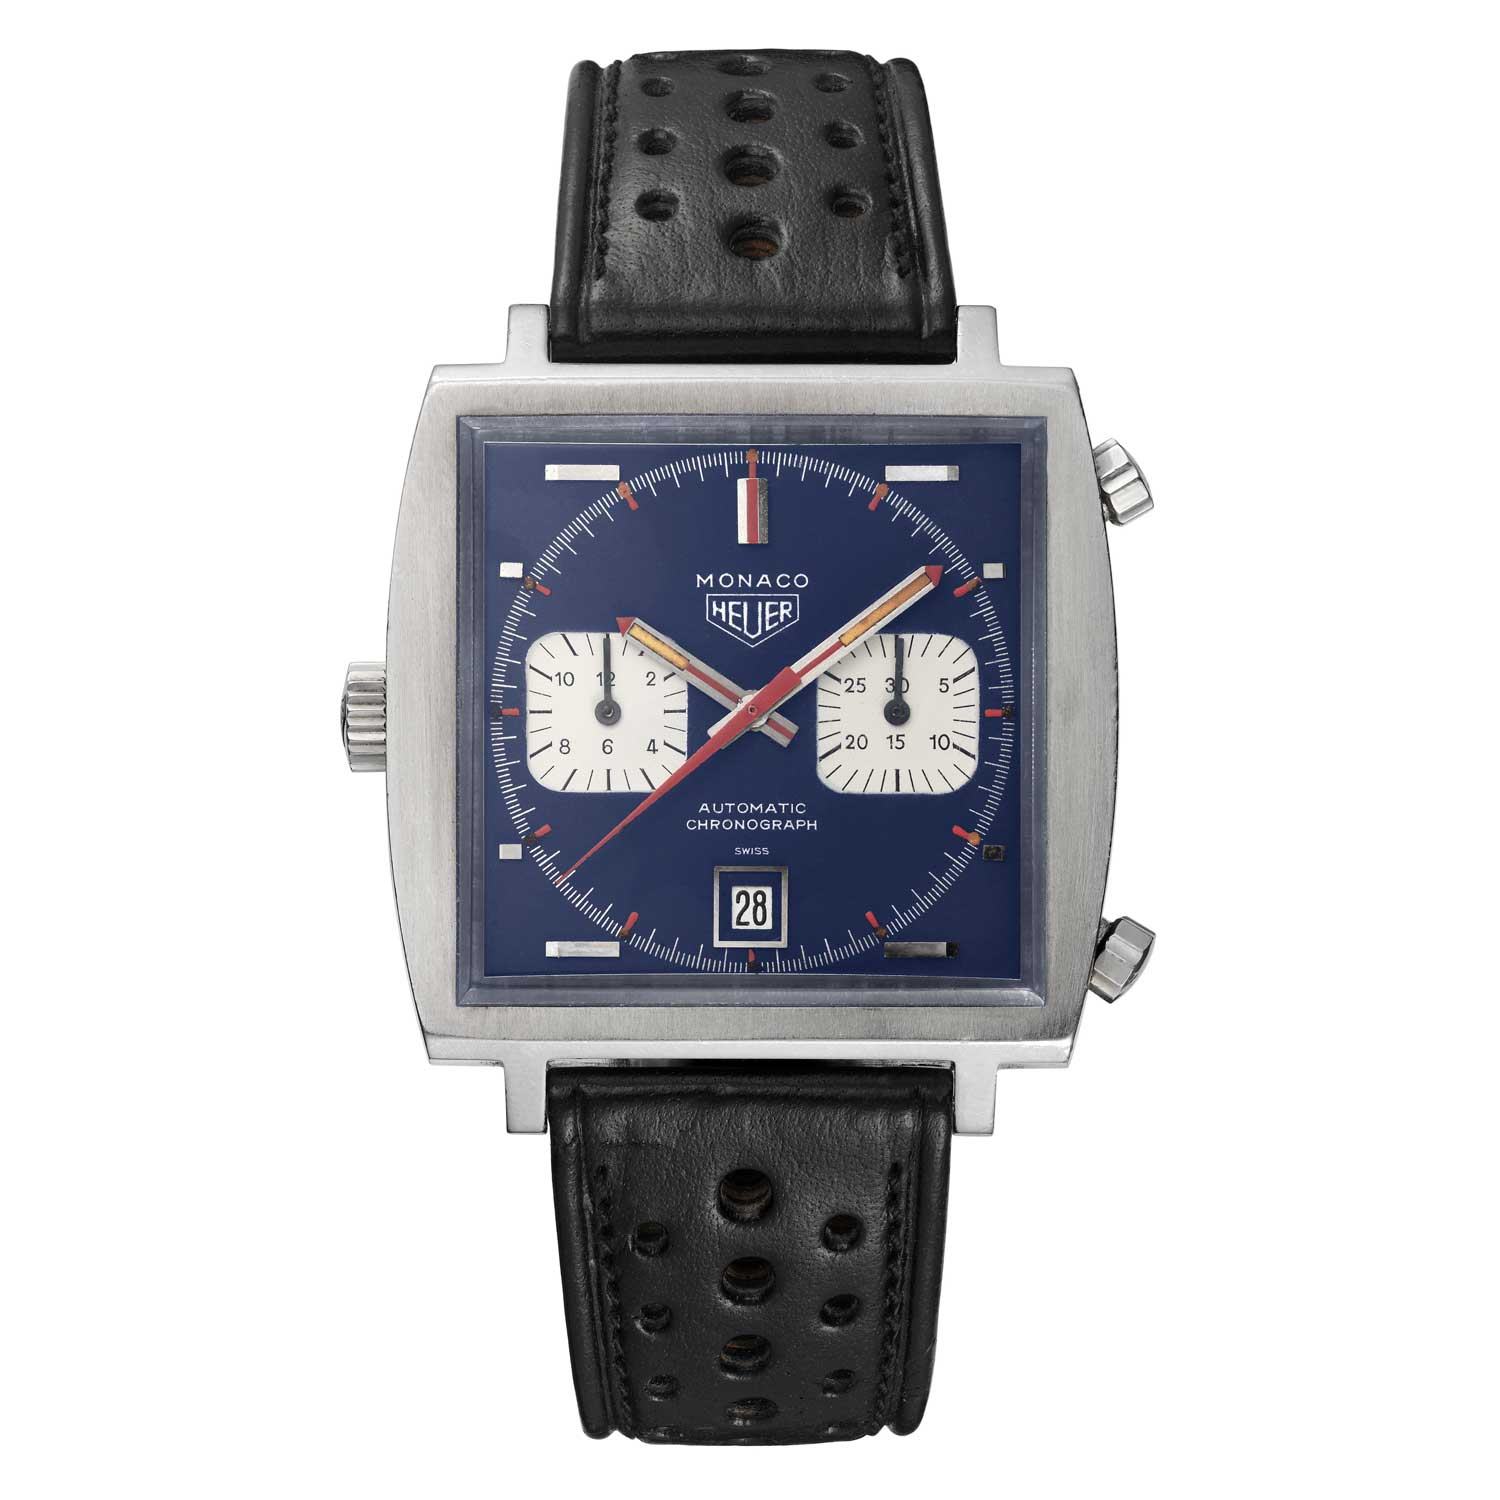 Heuer Monaco worn by Steve McQueen in 1971 movie, Le Mans